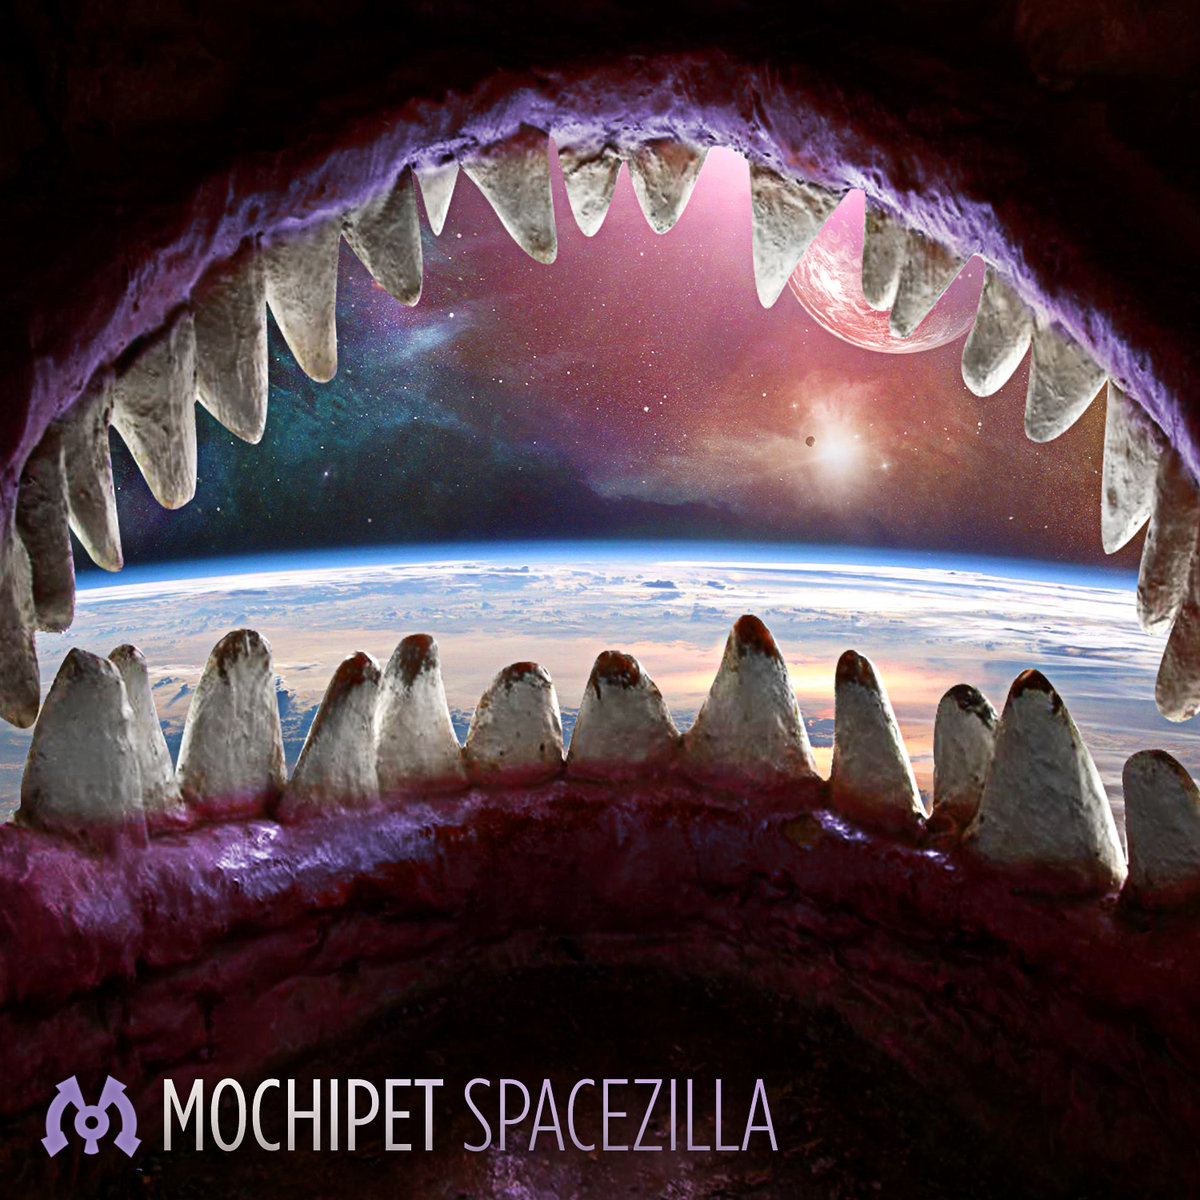 Mochipet - Spacezilla @ 'Spacezilla' album (electronic, dubstep)